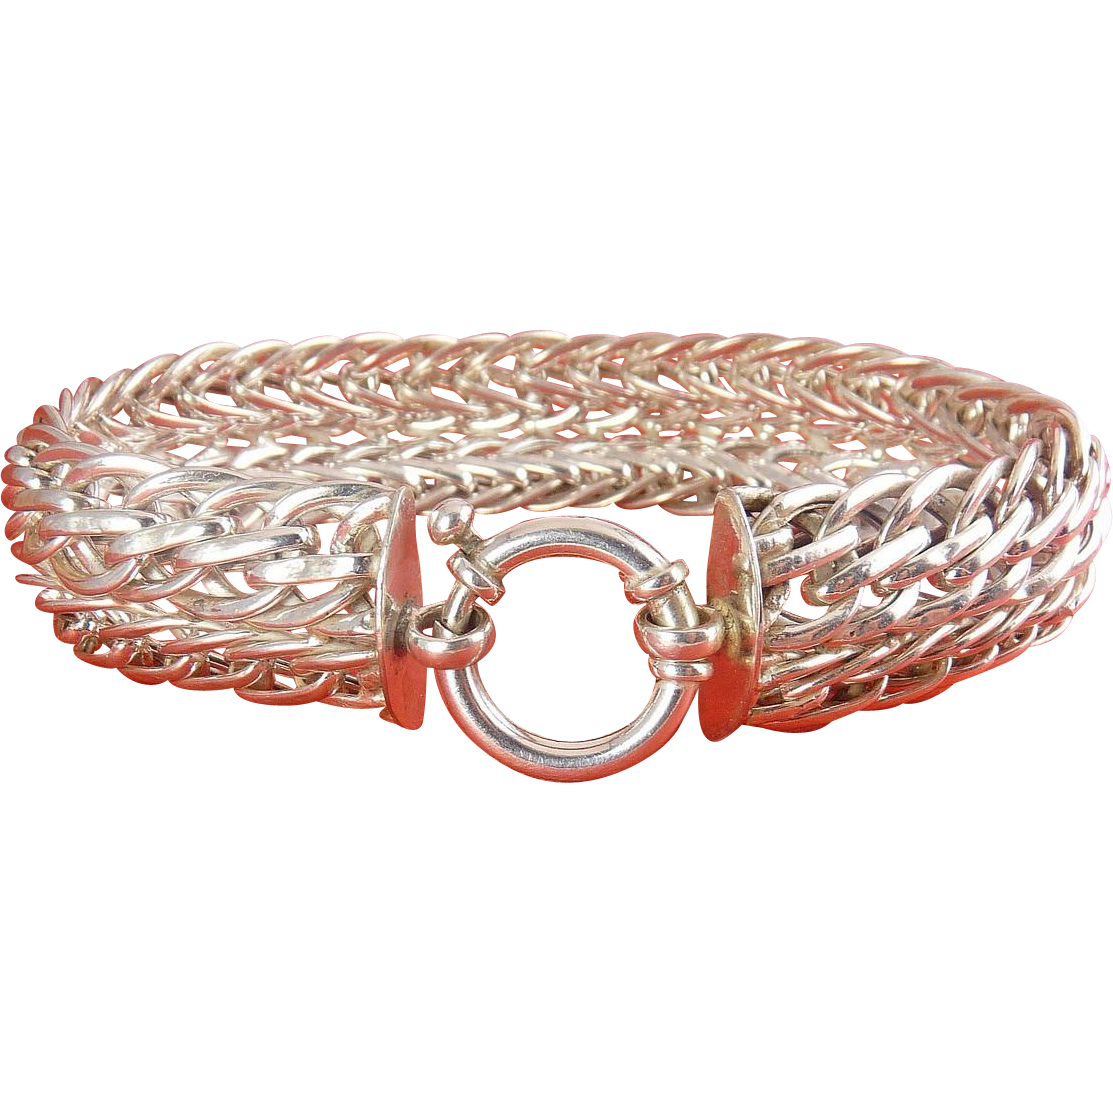 Sterling Silver Wide Braided Knit Style Bracelet - 8 1/2 Inch, Hefty